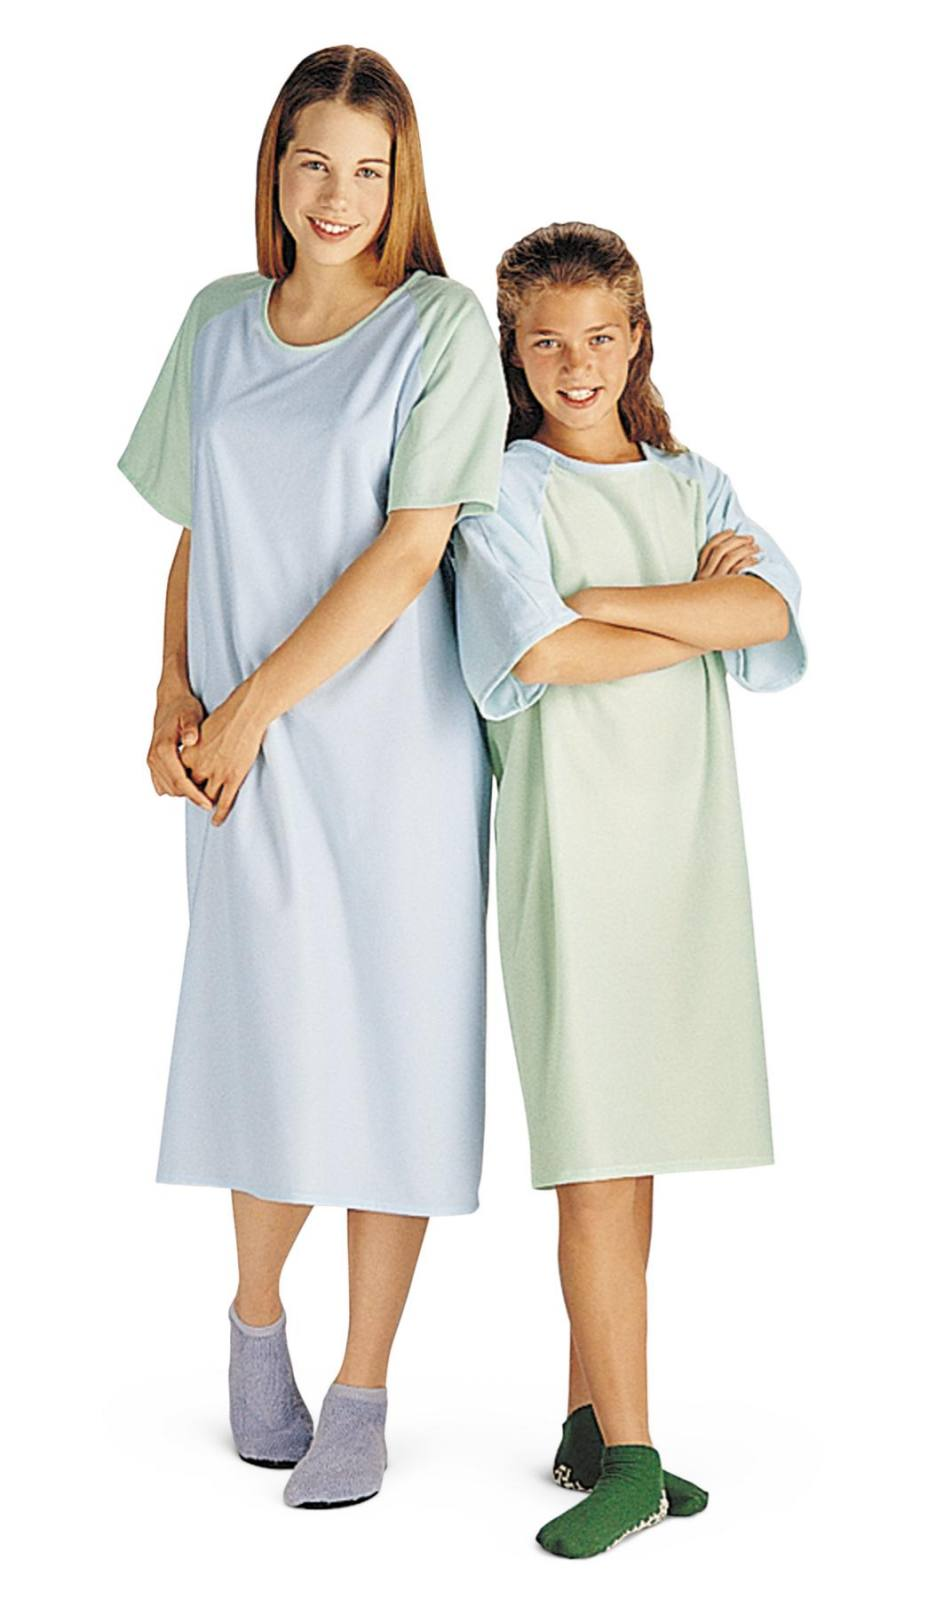 BRUSHED FLANNEL ADOLESCENT PATIENT GOWNS for sale in SAN FRANCISCO ...